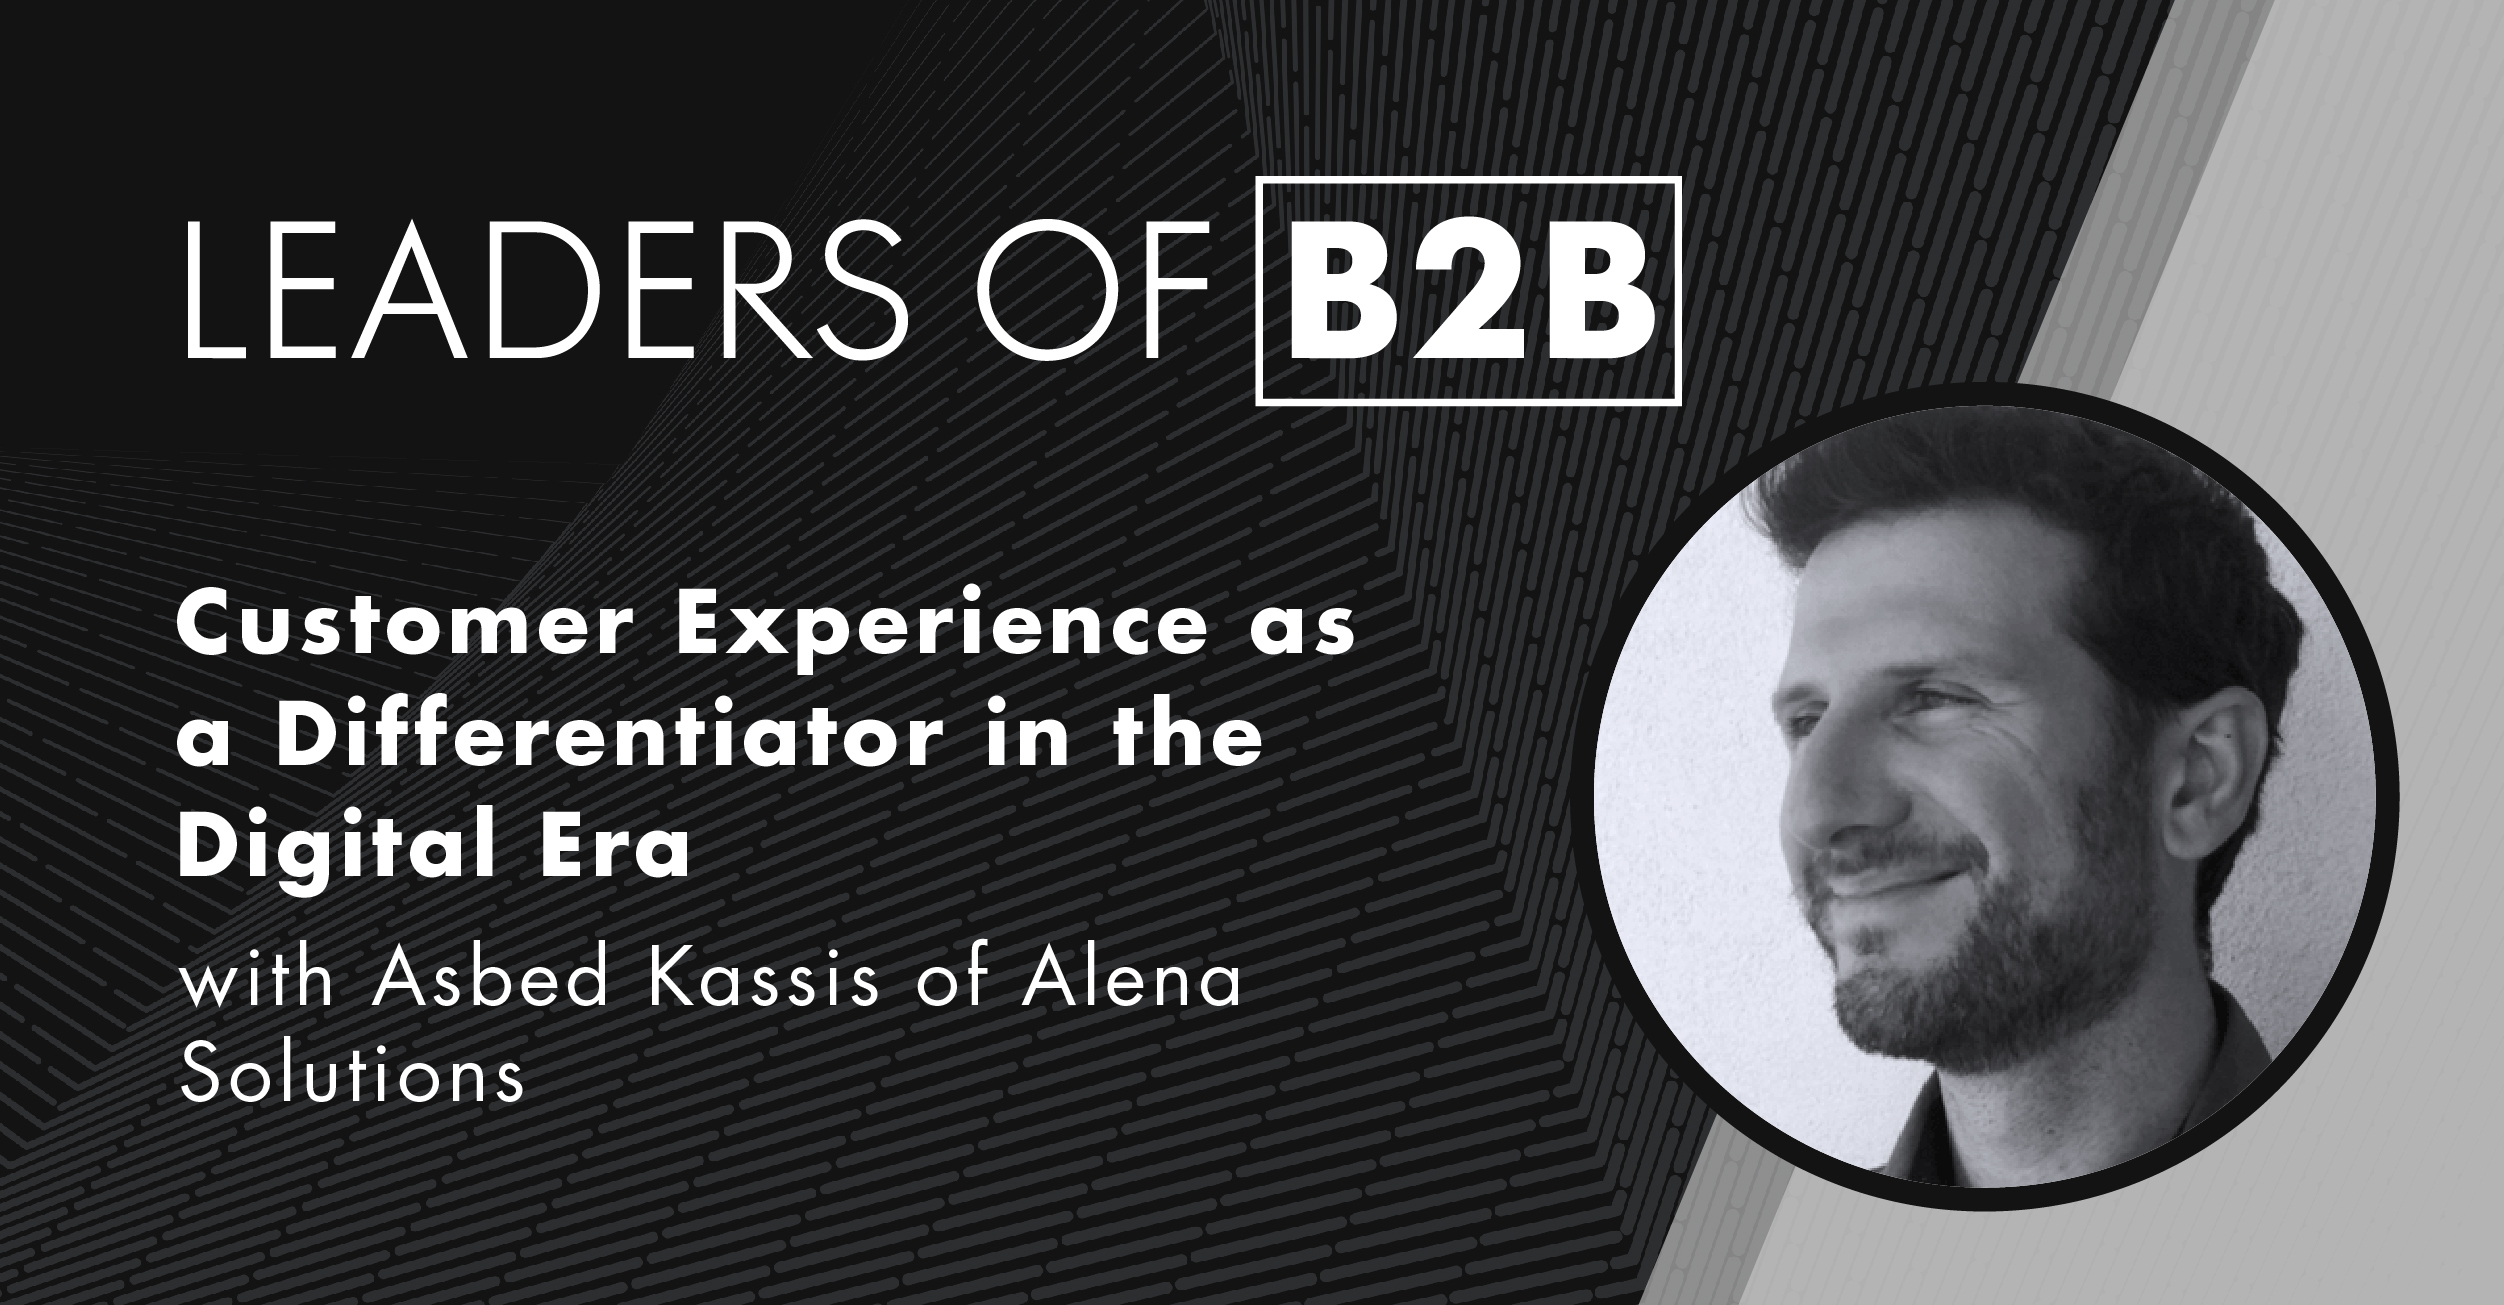 Asbed Kassis of Alena Solutions